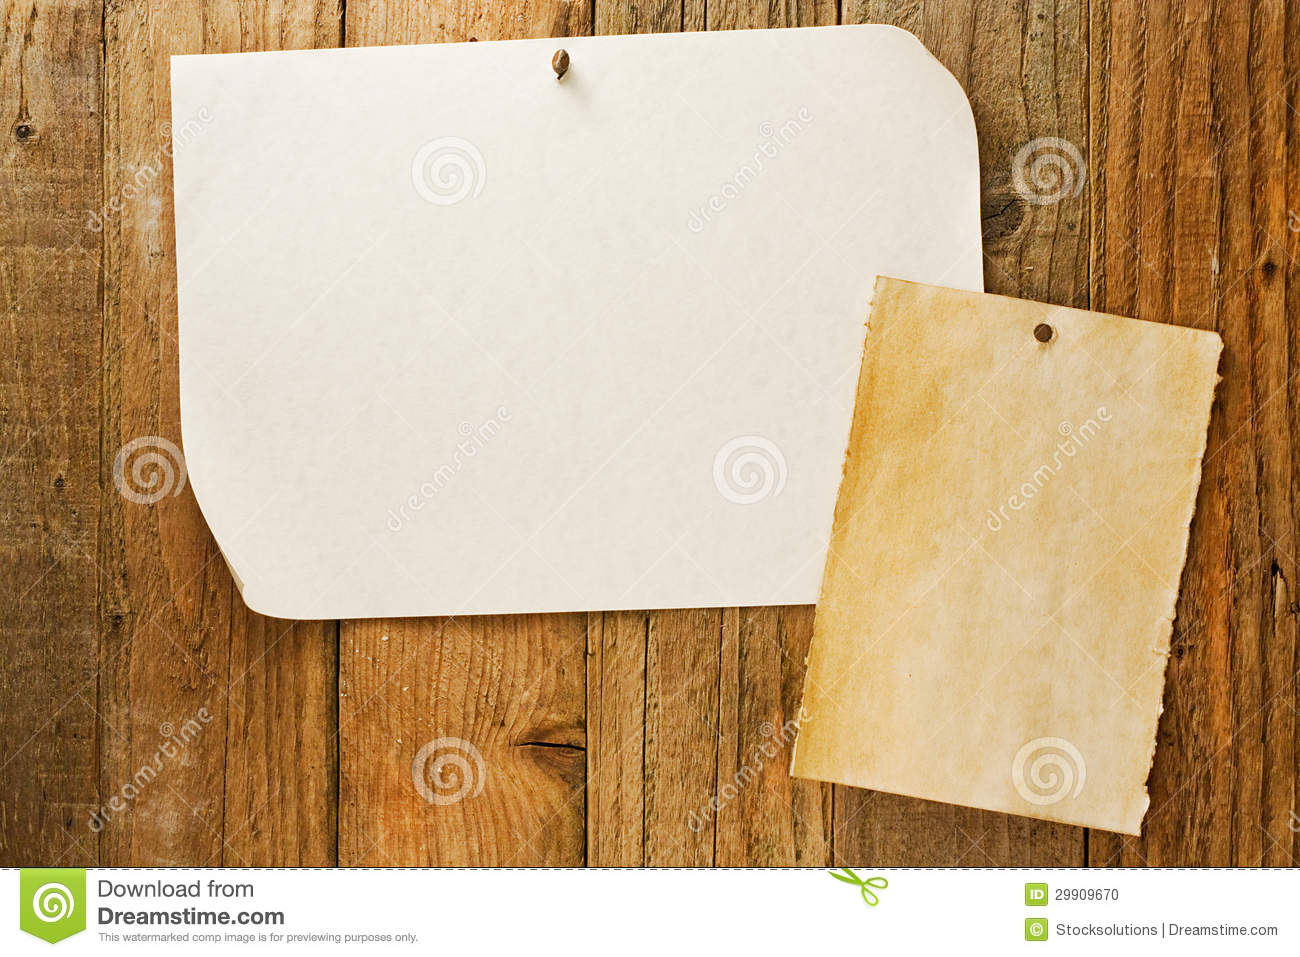 Mottled beige paper naled to distressed wooden wall stock for Wall to wall paper